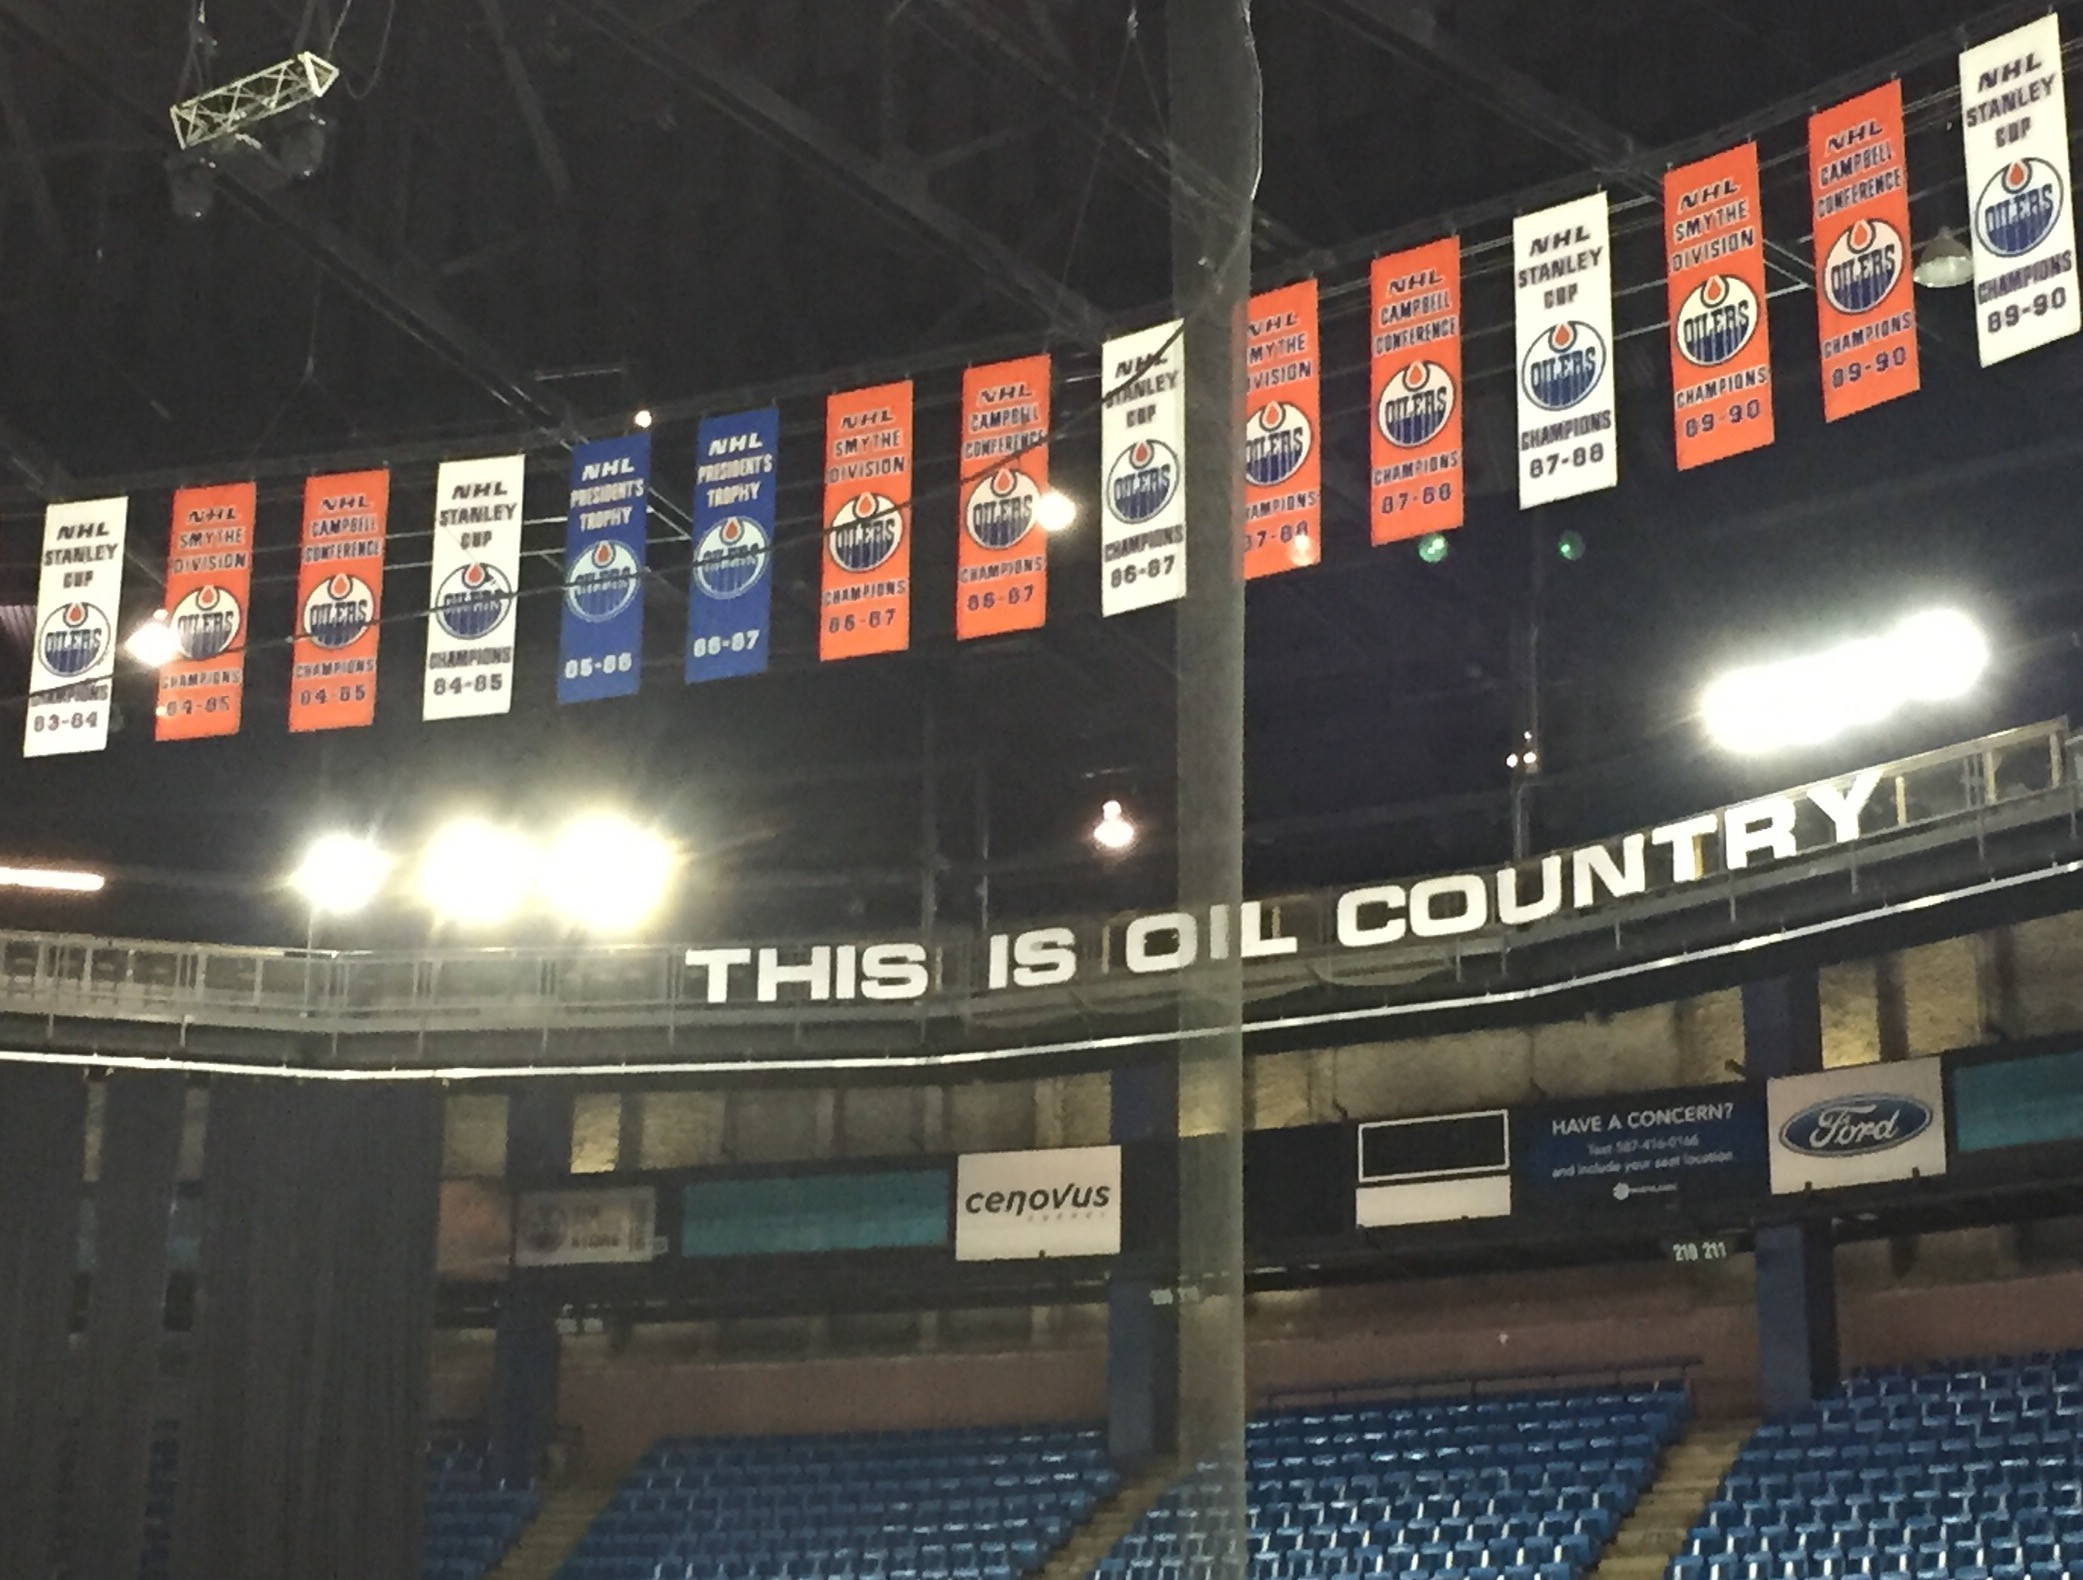 The Edmonton Oilers' five Stanley Cup banners are in white in the rafters of Rexall Place, which is in its final season as an NHL rink. (Mike Harrington/Buffalo News).